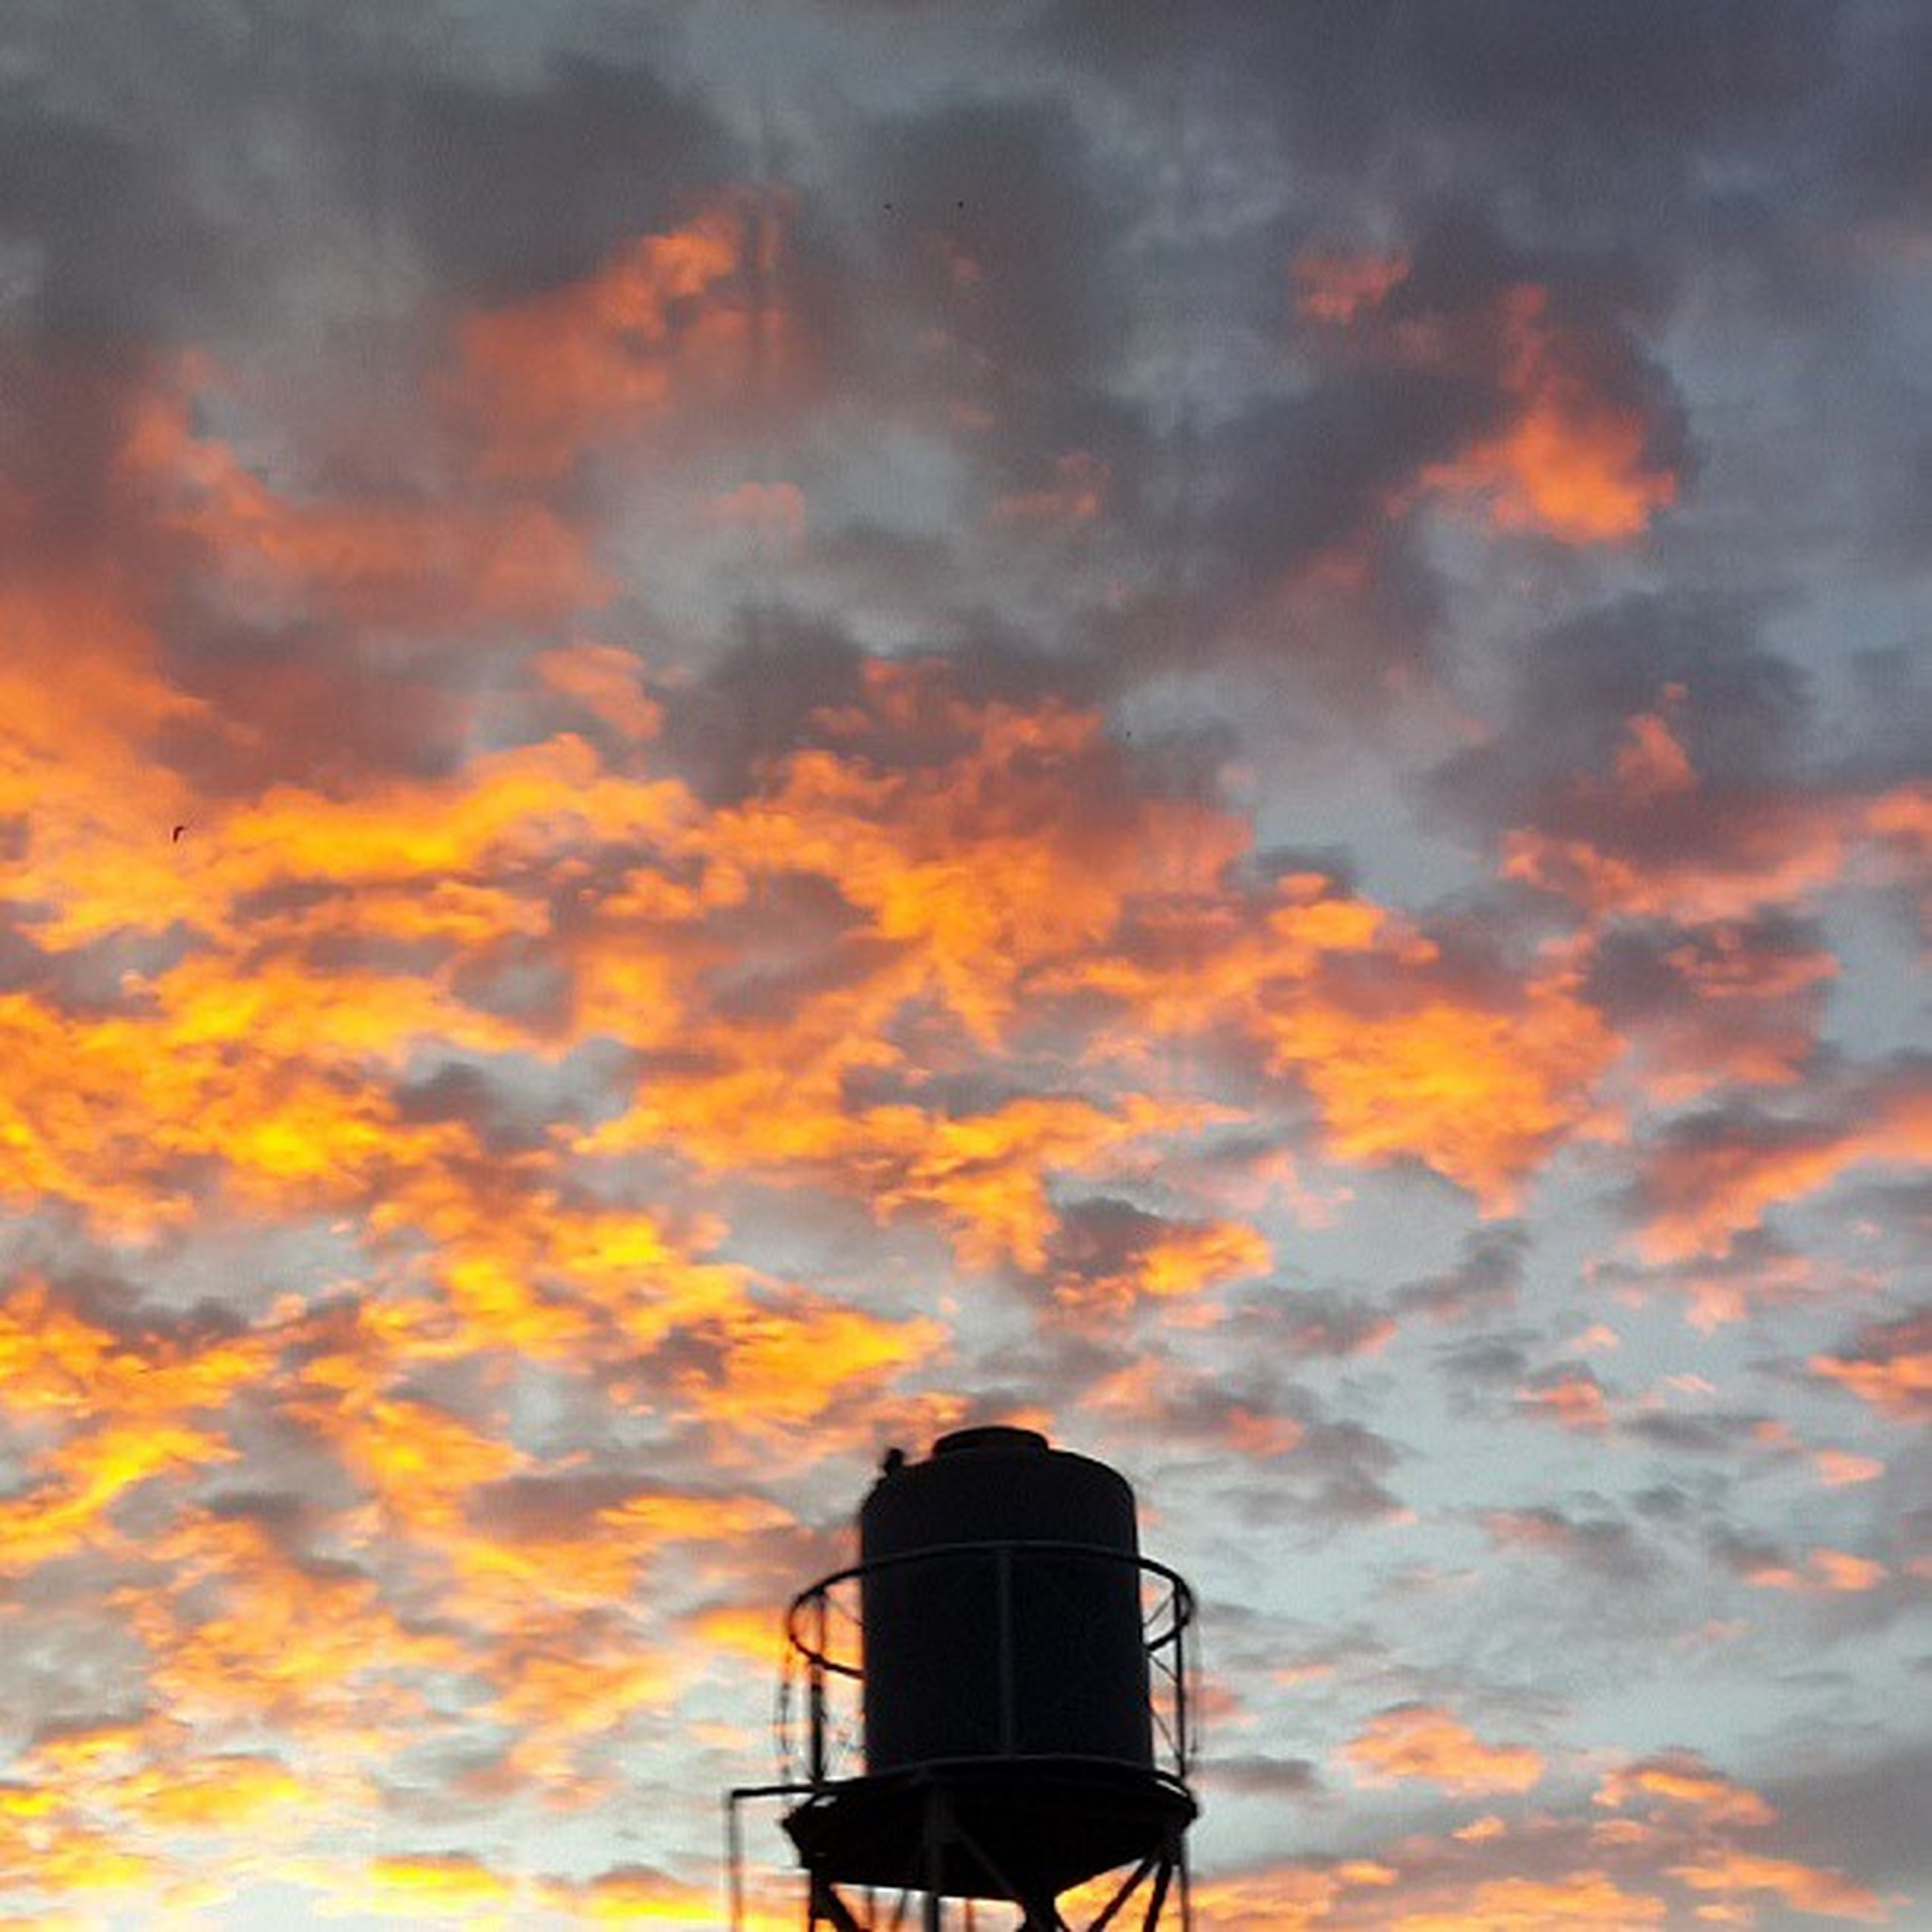 sunset, sky, low angle view, building exterior, orange color, cloud - sky, architecture, built structure, cloudy, silhouette, dramatic sky, cloud, high section, outdoors, weather, nature, beauty in nature, dusk, no people, scenics